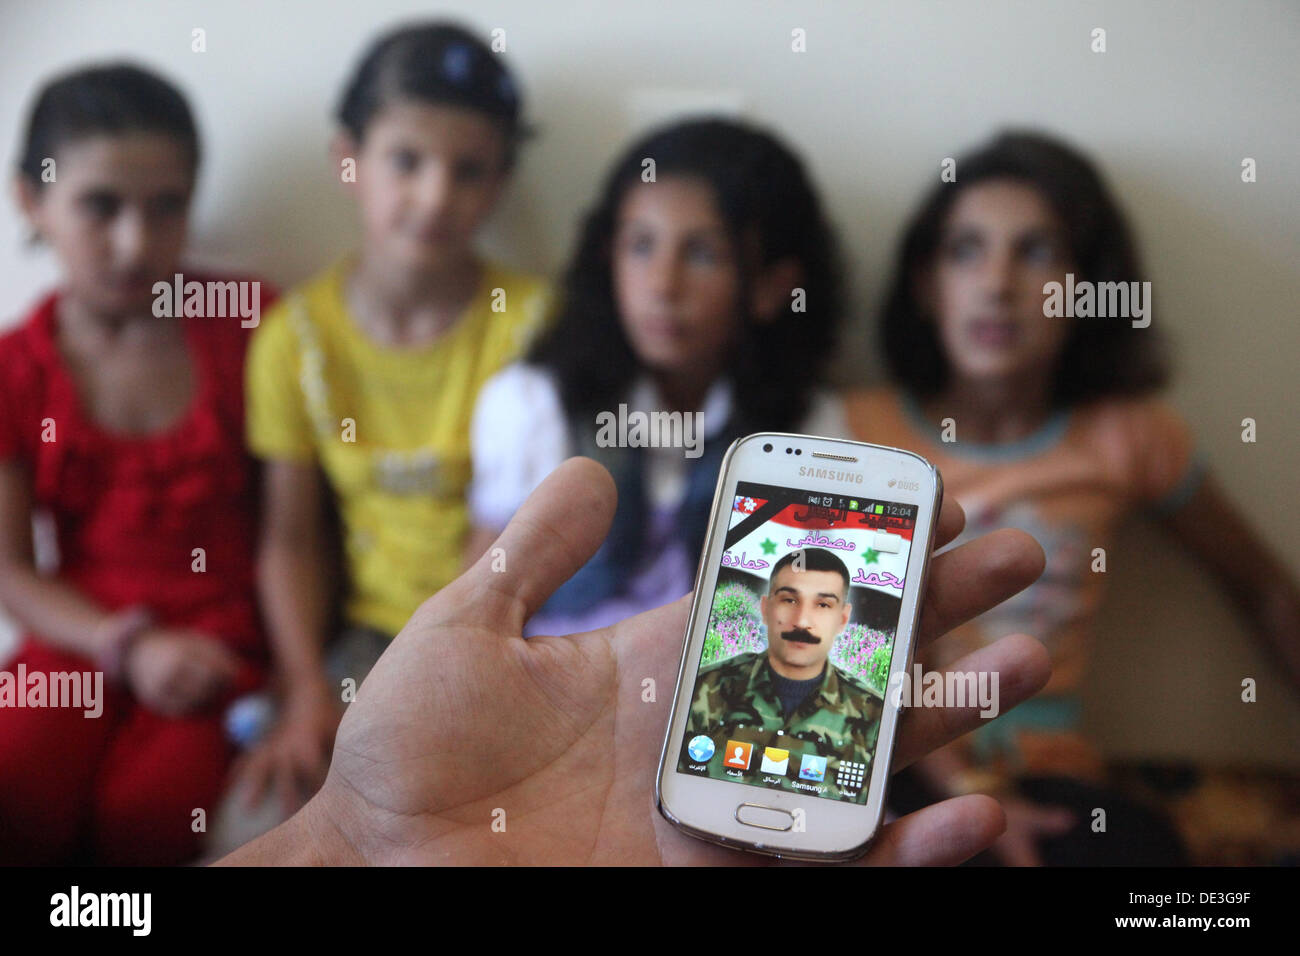 On the screen of a smarthphone the photo of a fallen soldier of the Syrian Arab Army killed by rebels is displayed in Damaskus, Syria on September 19, 2013. In the background the children of the killed soldier, which are displaced from Aleppo, are seen. Photo: Martin Lejeune - Stock Image